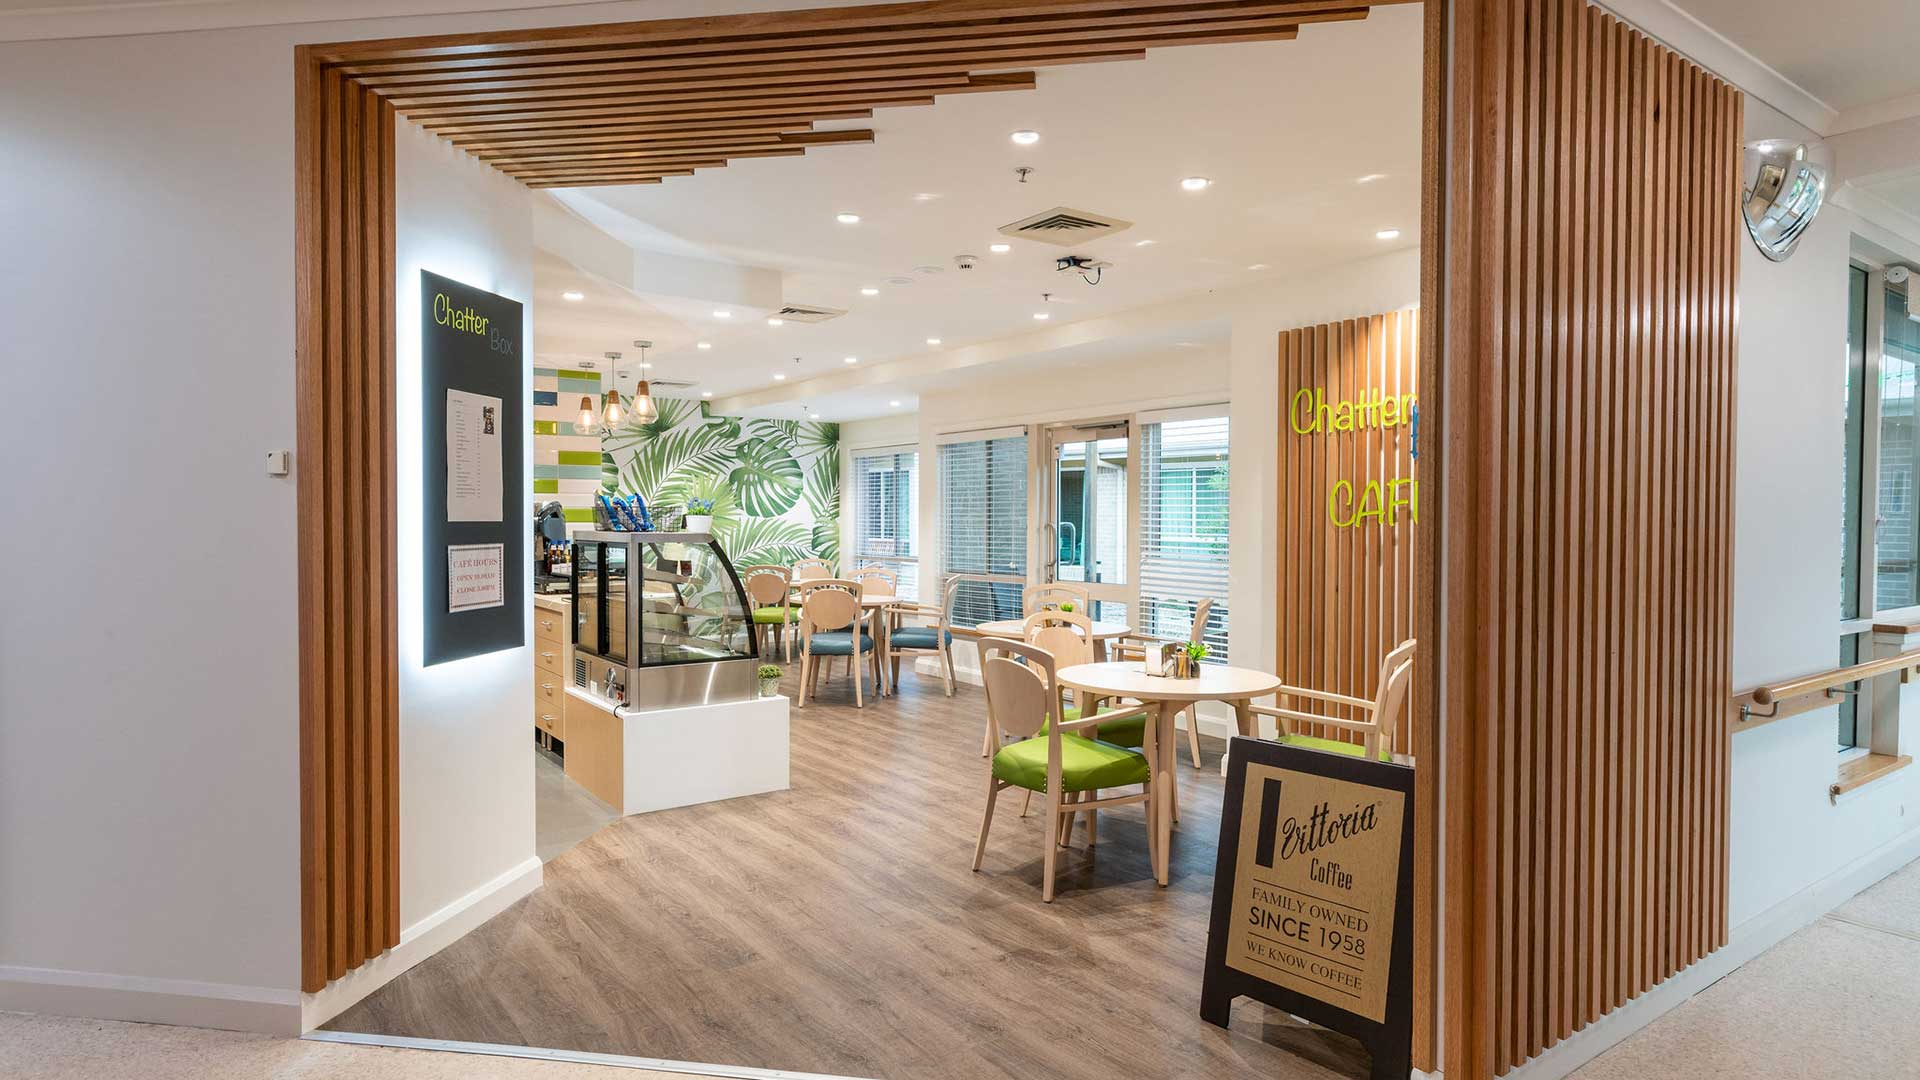 Jemalong Retirement Village - Cafe | Hines Constructions, Central West NSW